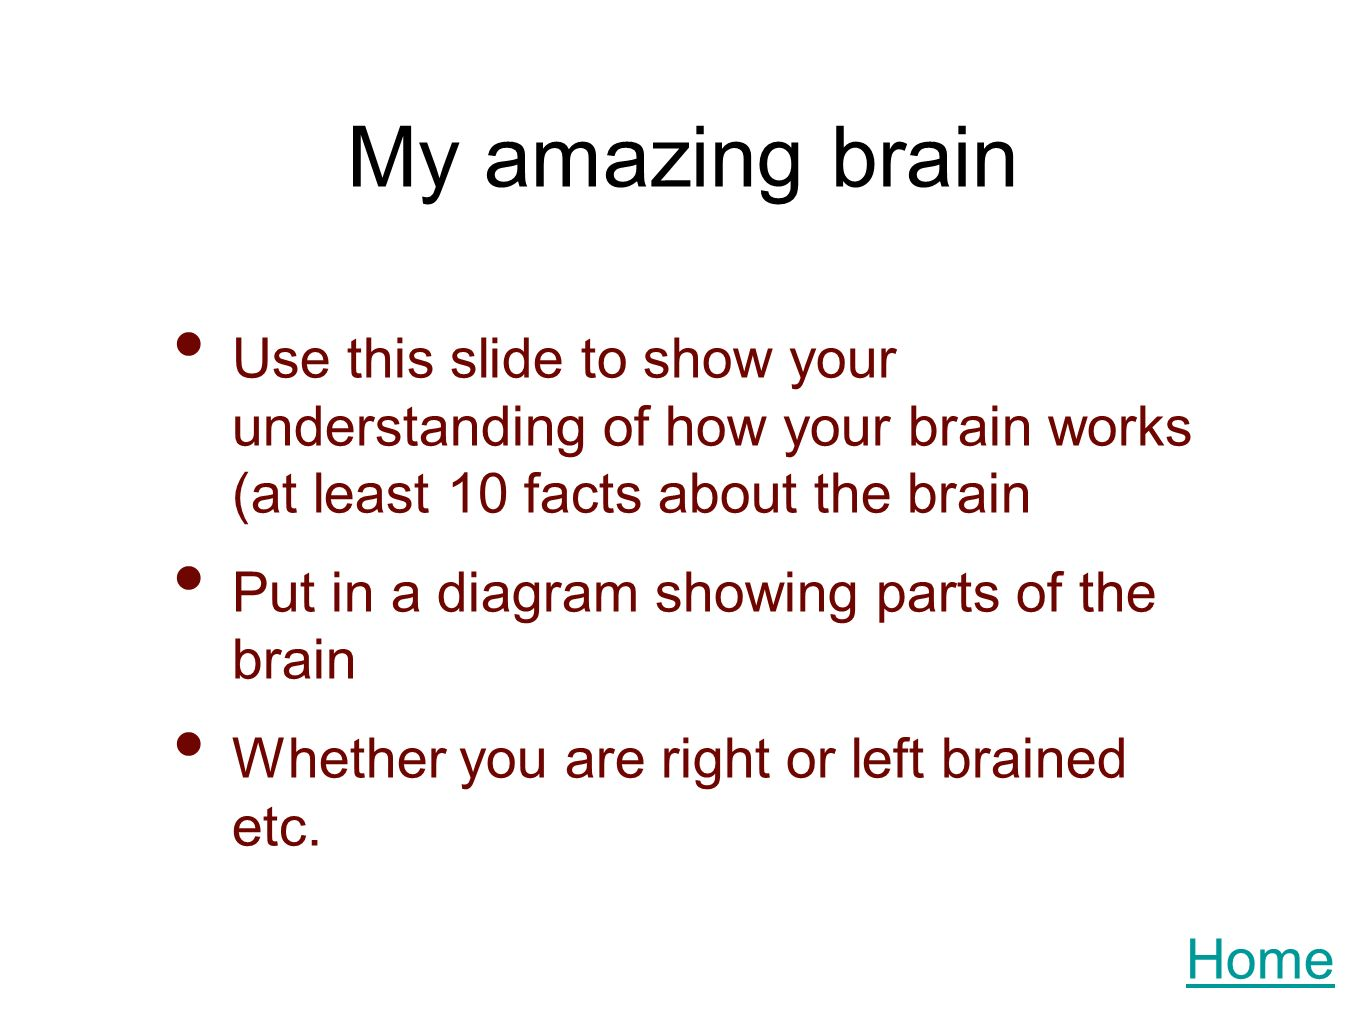 My amazing brain Use this slide to show your understanding of how your brain works (at least 10 facts about the brain Put in a diagram showing parts of the brain Whether you are right or left brained etc.